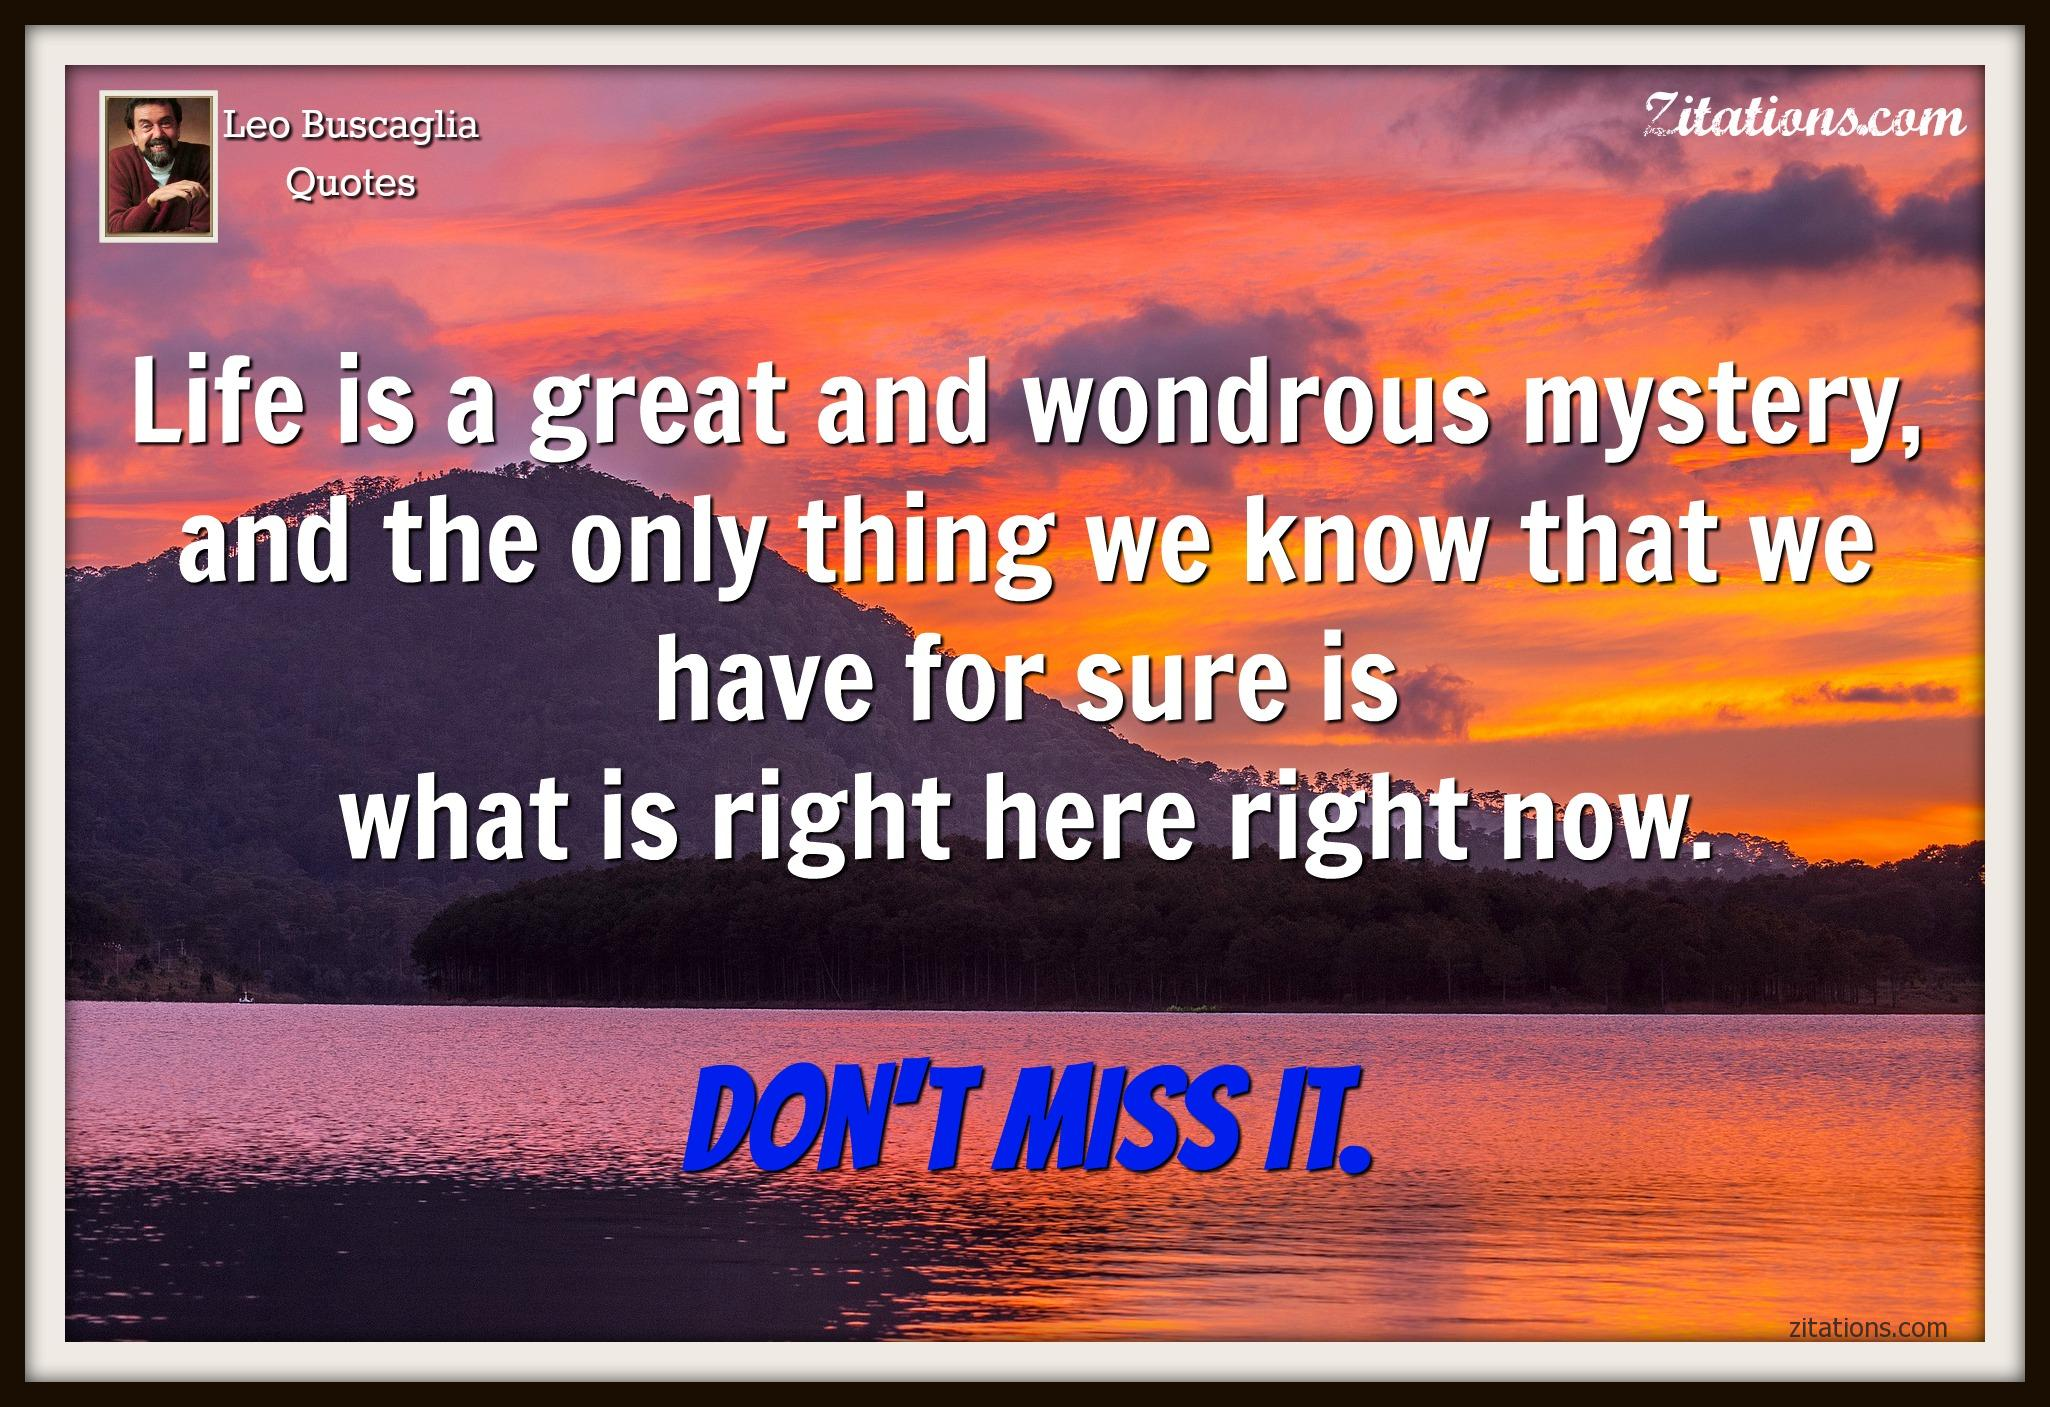 Leo Buscaglia Quotes - quotes live in the moment